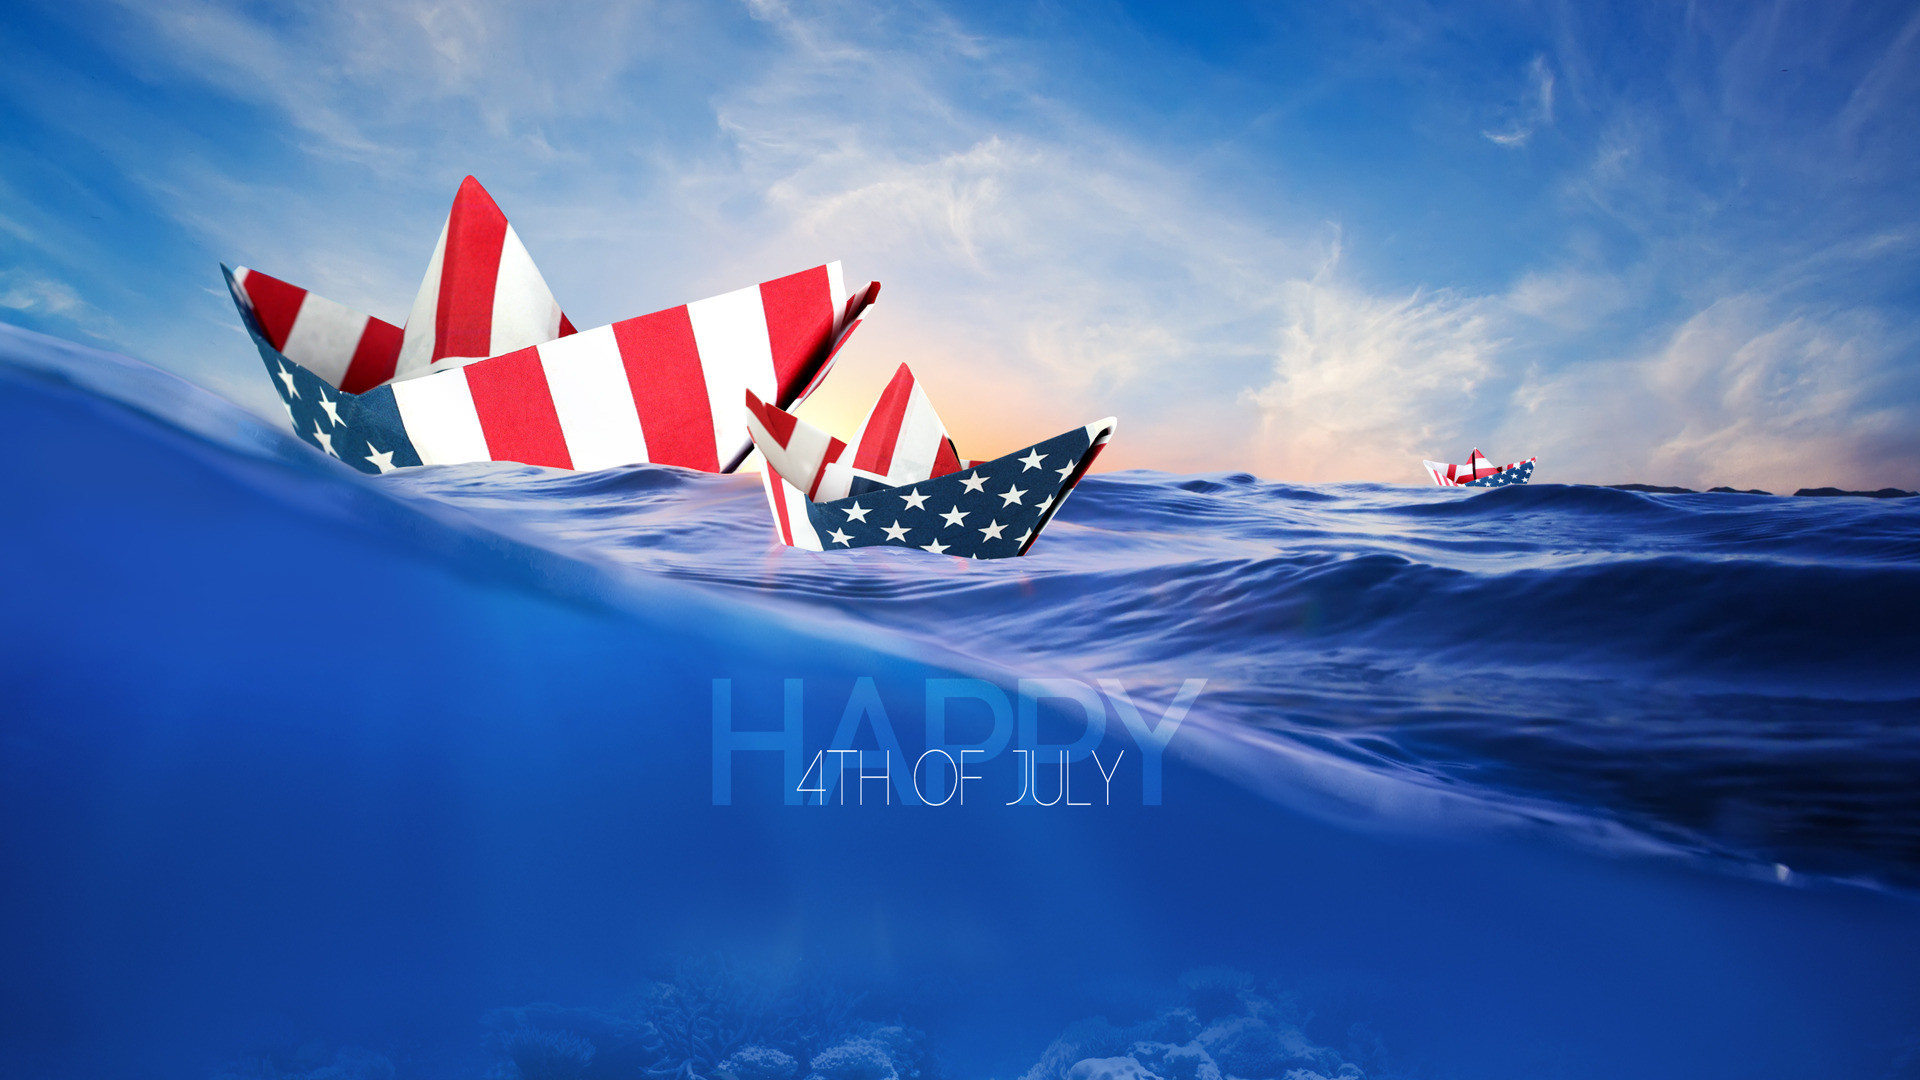 Cute Birthday Wallpaper For Girl 4th Of July Backgrounds 183 ① Wallpapertag